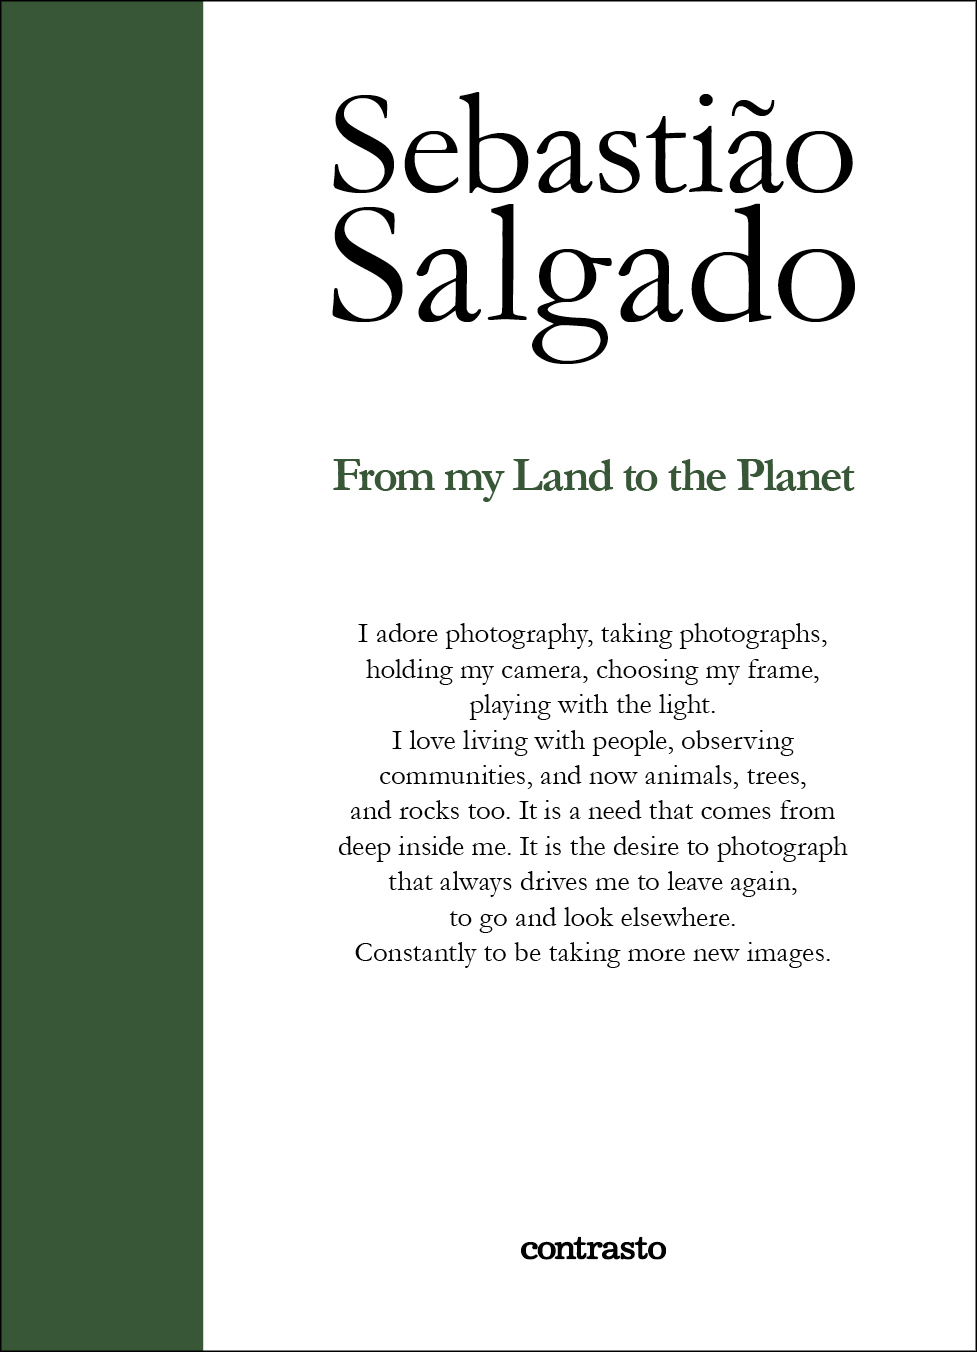 Sebastiao_salgado_from_my_land_to_the_planet